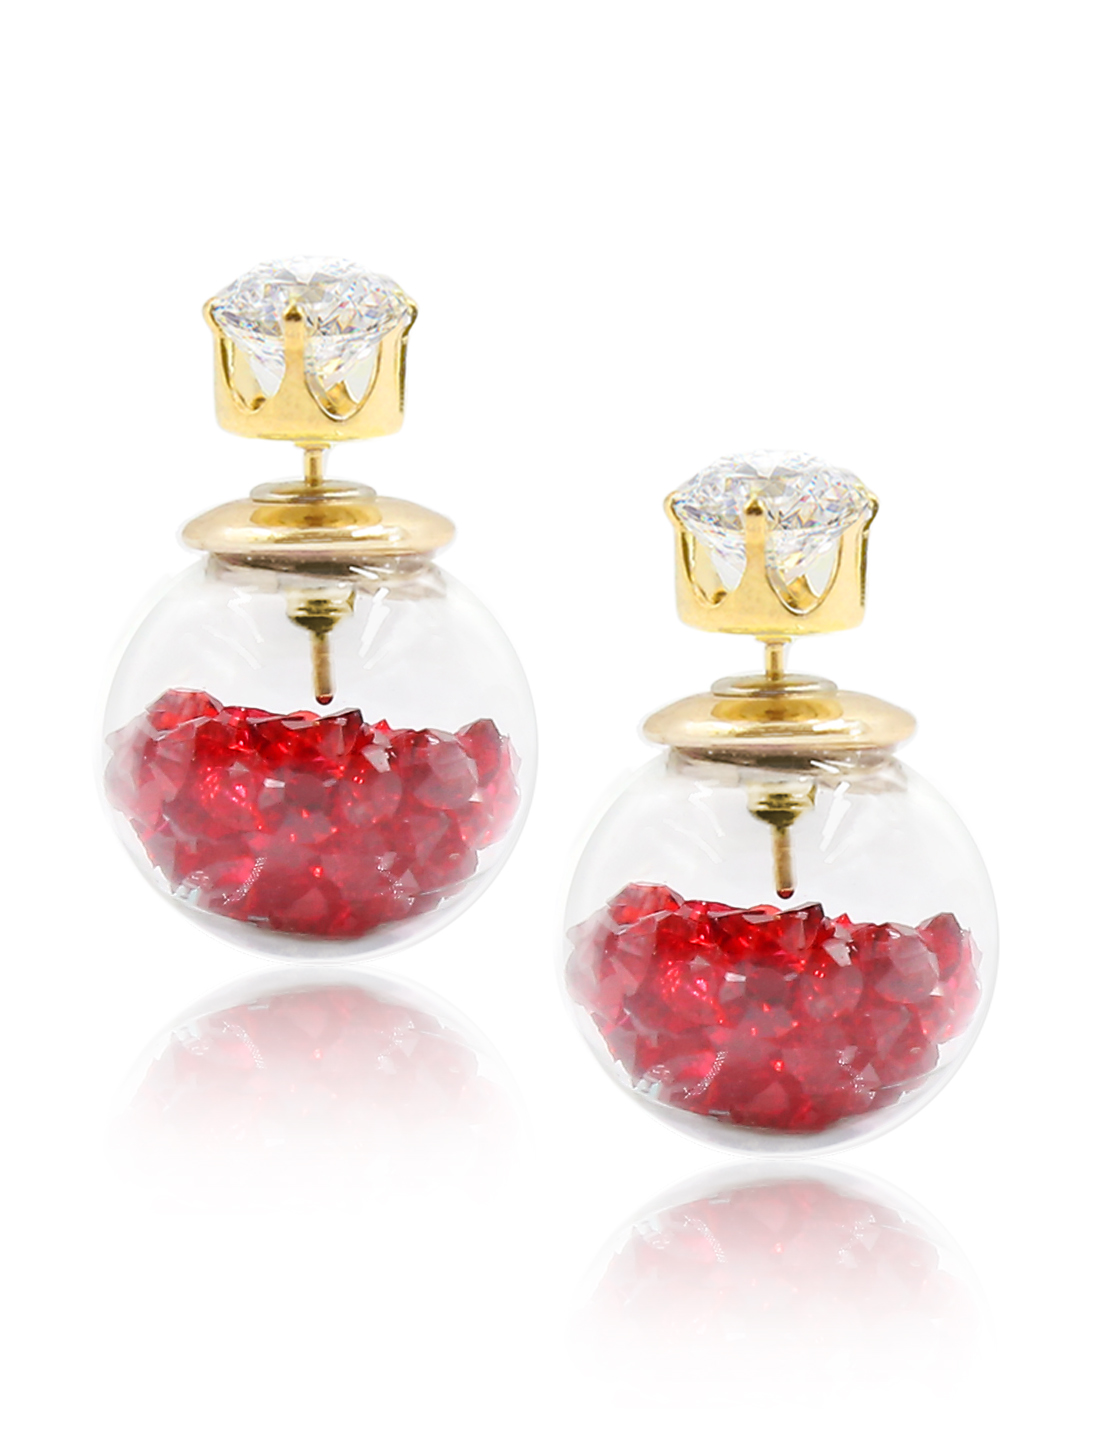 Fashion Women Elegant Double Sides Zircon Transparent Ball Faux Crystal Earrings Ear Stud 1 Pair Red